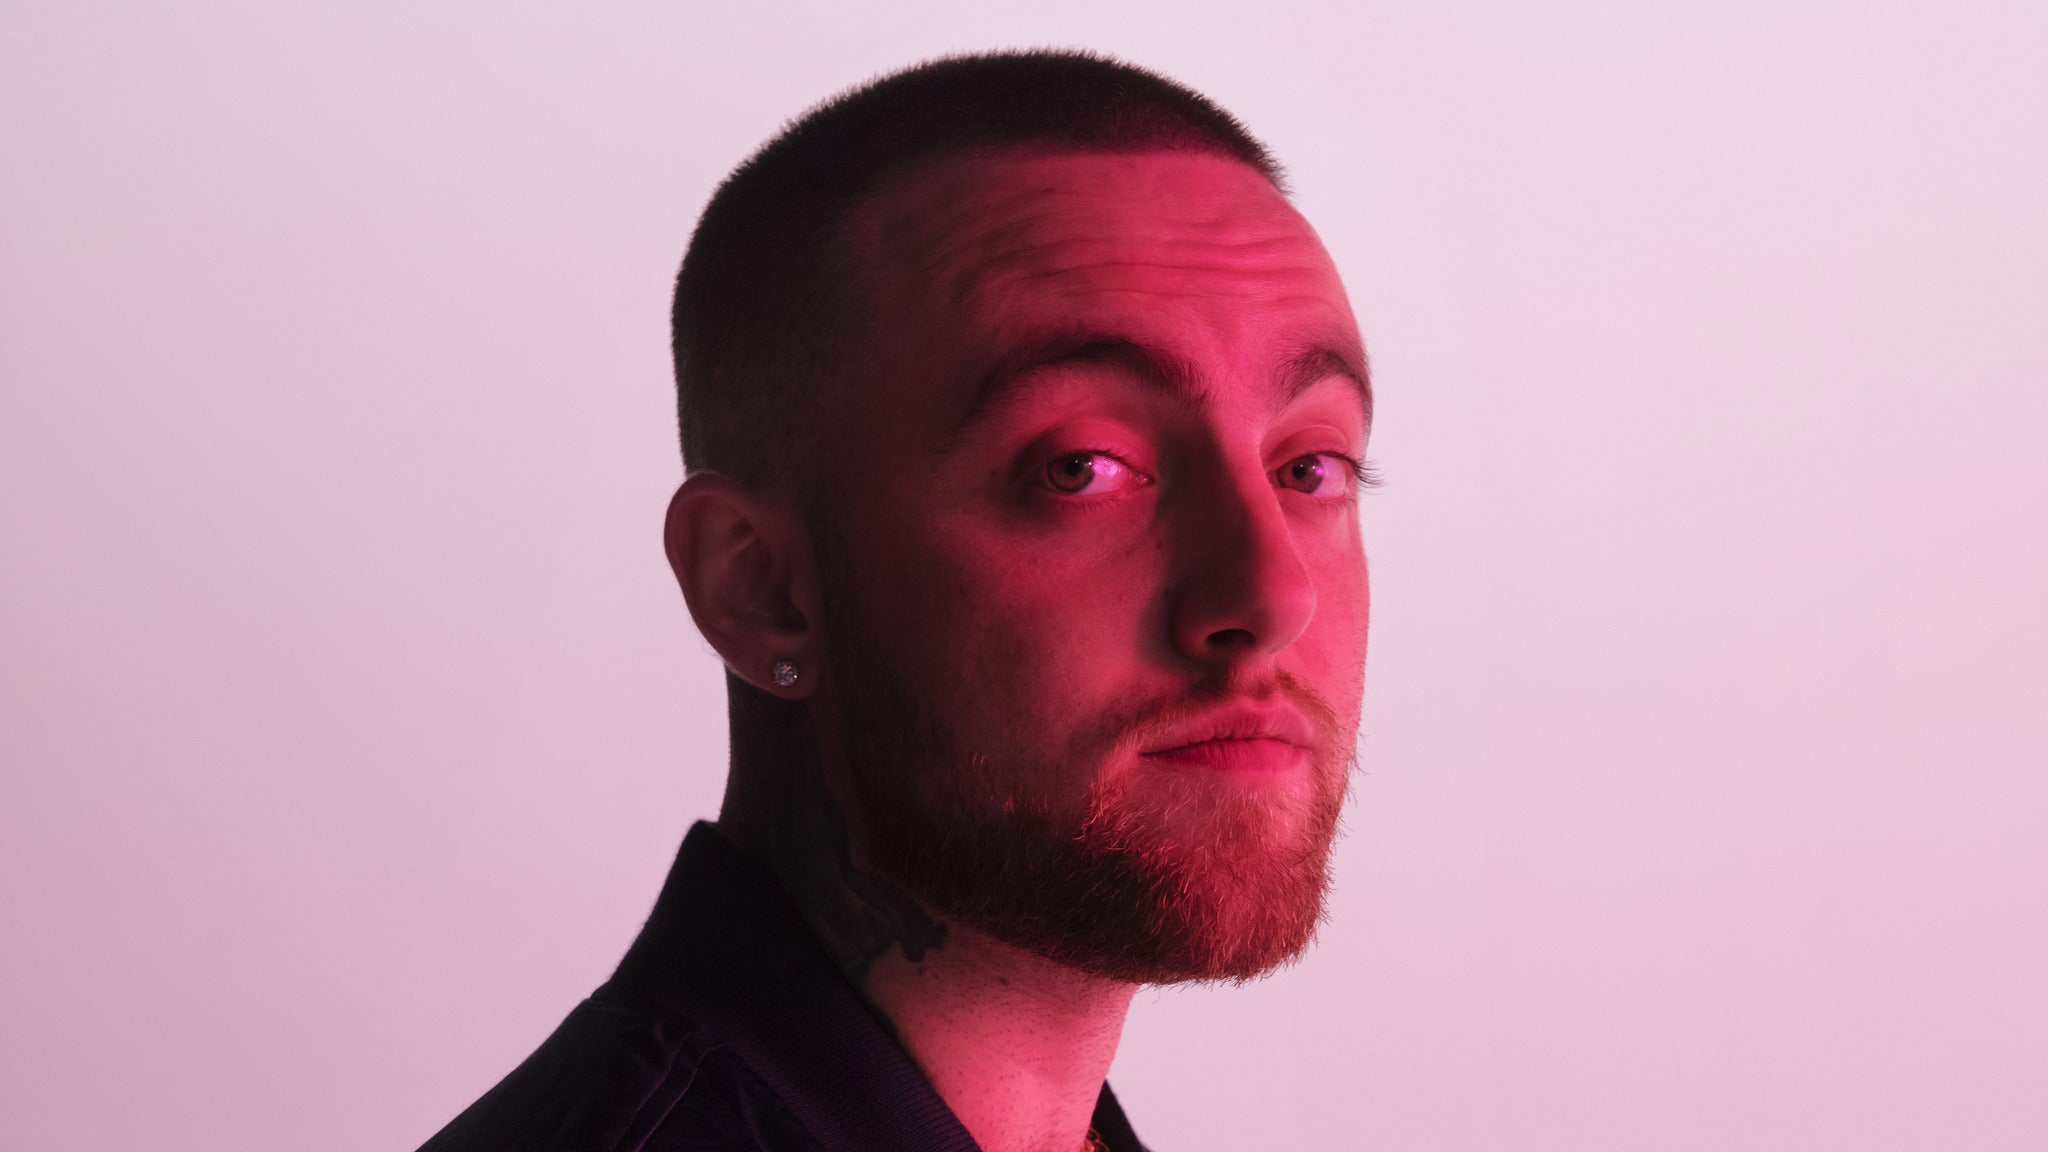 Mac Miller: The Swimming Tour at City National Civic